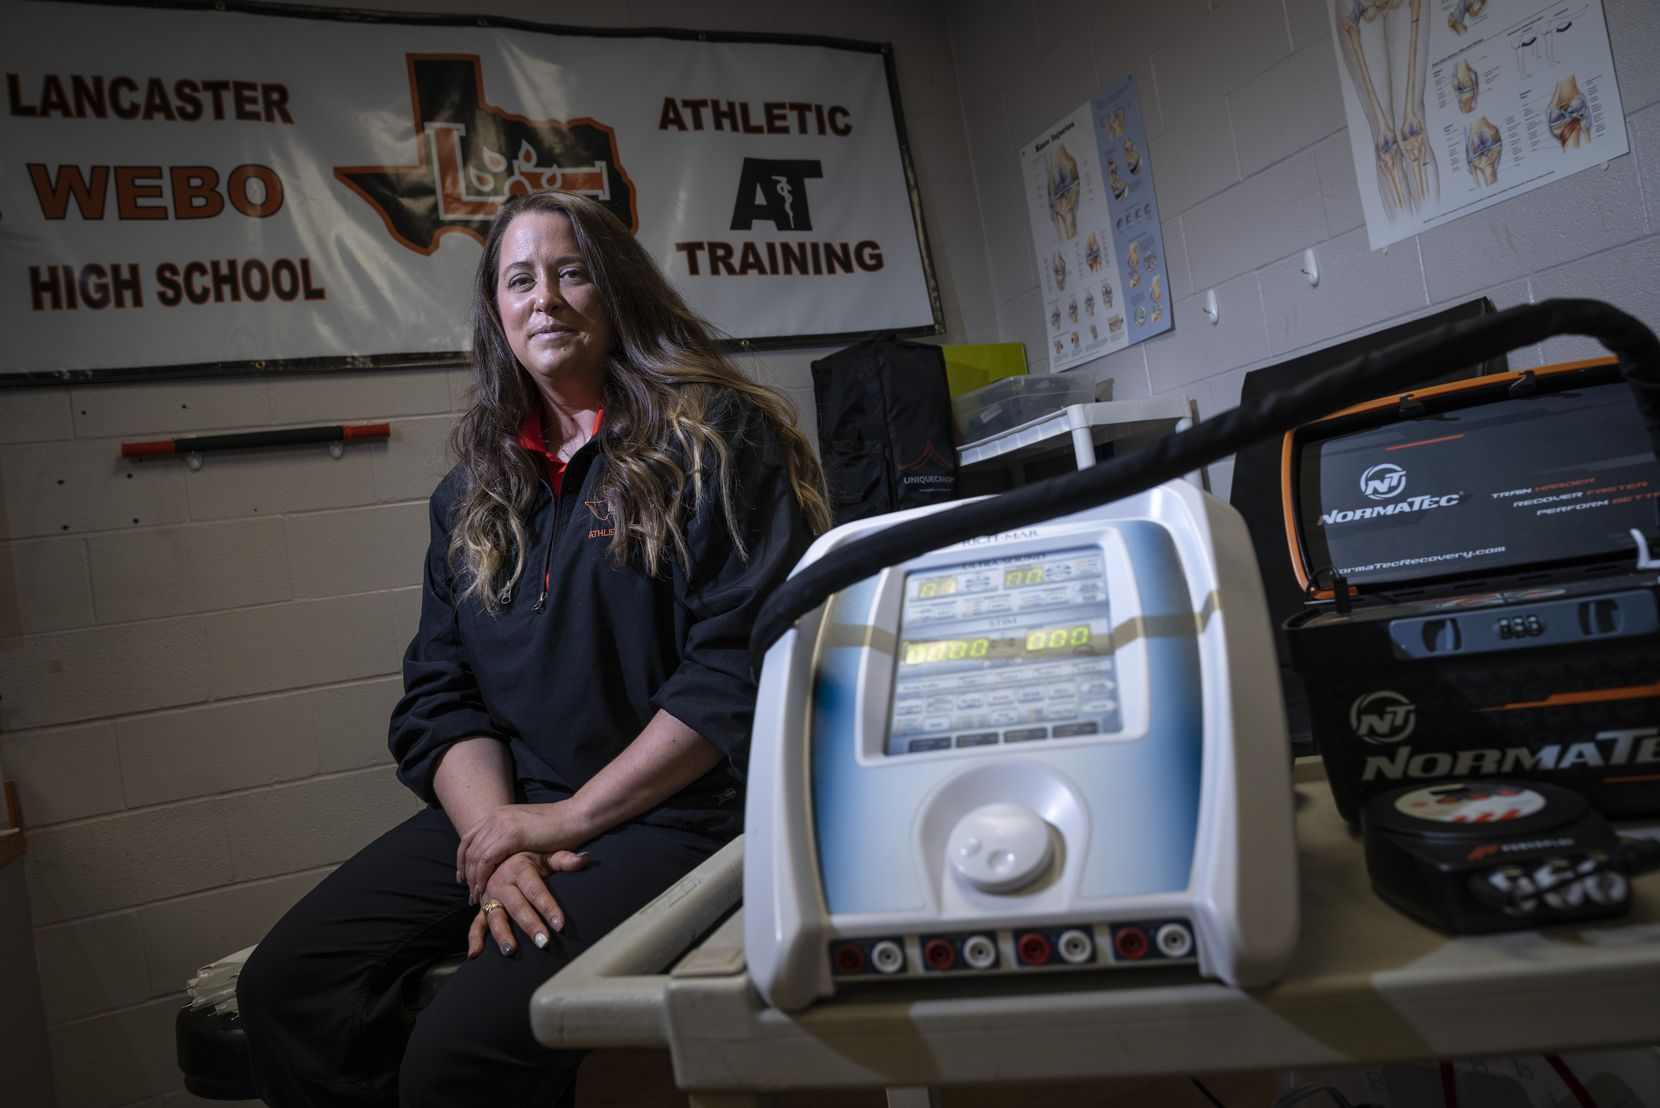 Jordan Hart, head athletic trainer for Lancaster High School, sits next to an ultra sound and electric stimulation device used on muscles, inside the school's athletic training room in Dallas, on Tuesday, March 09, 2021.